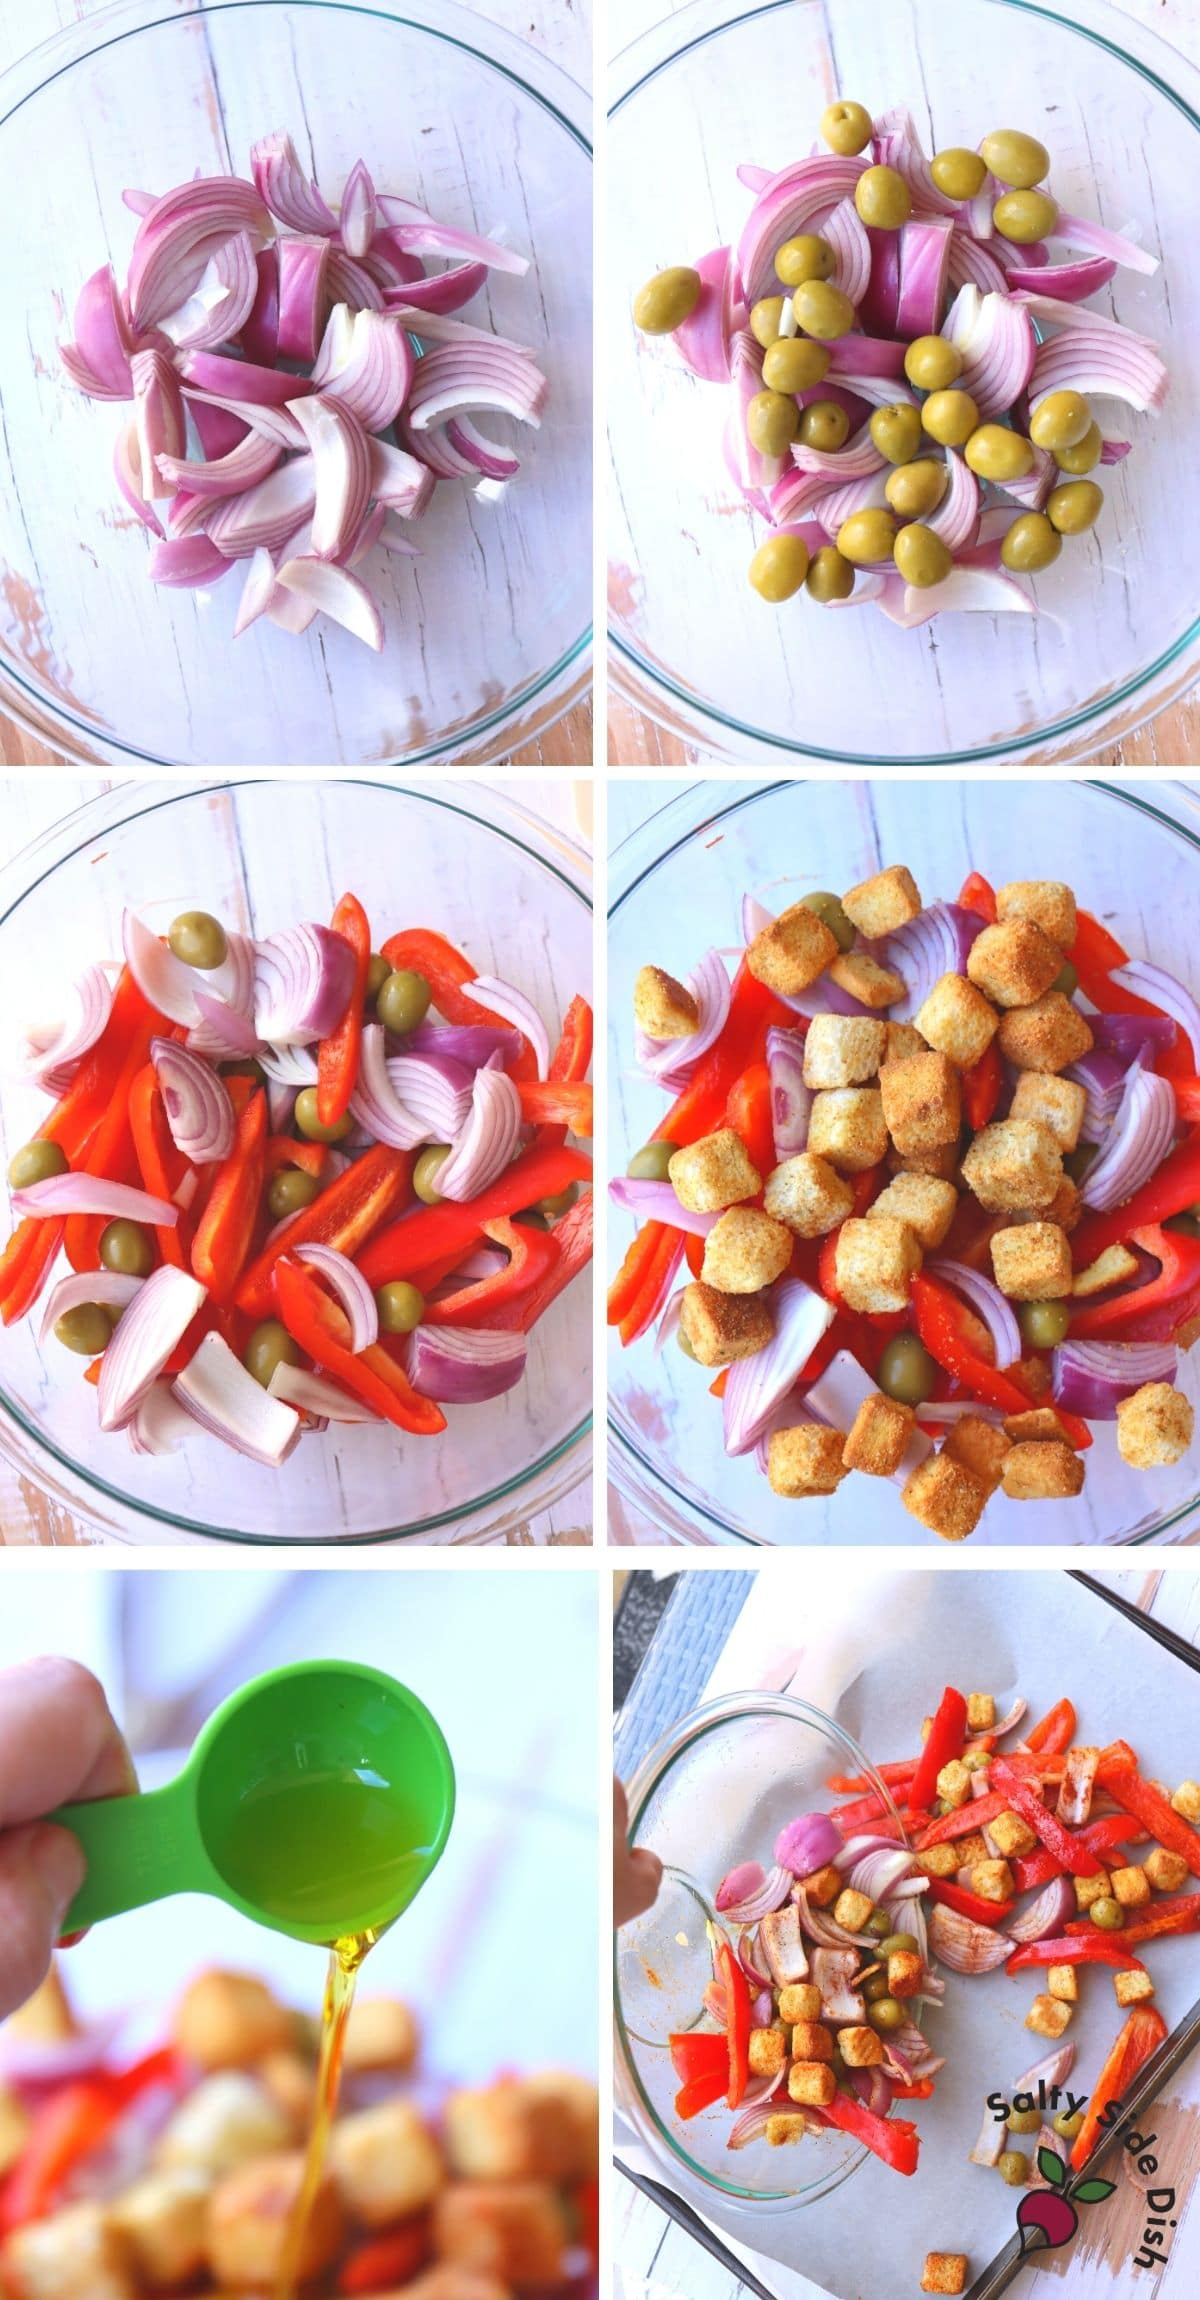 Mediterranean vegetables seasoned and drizzled with oil